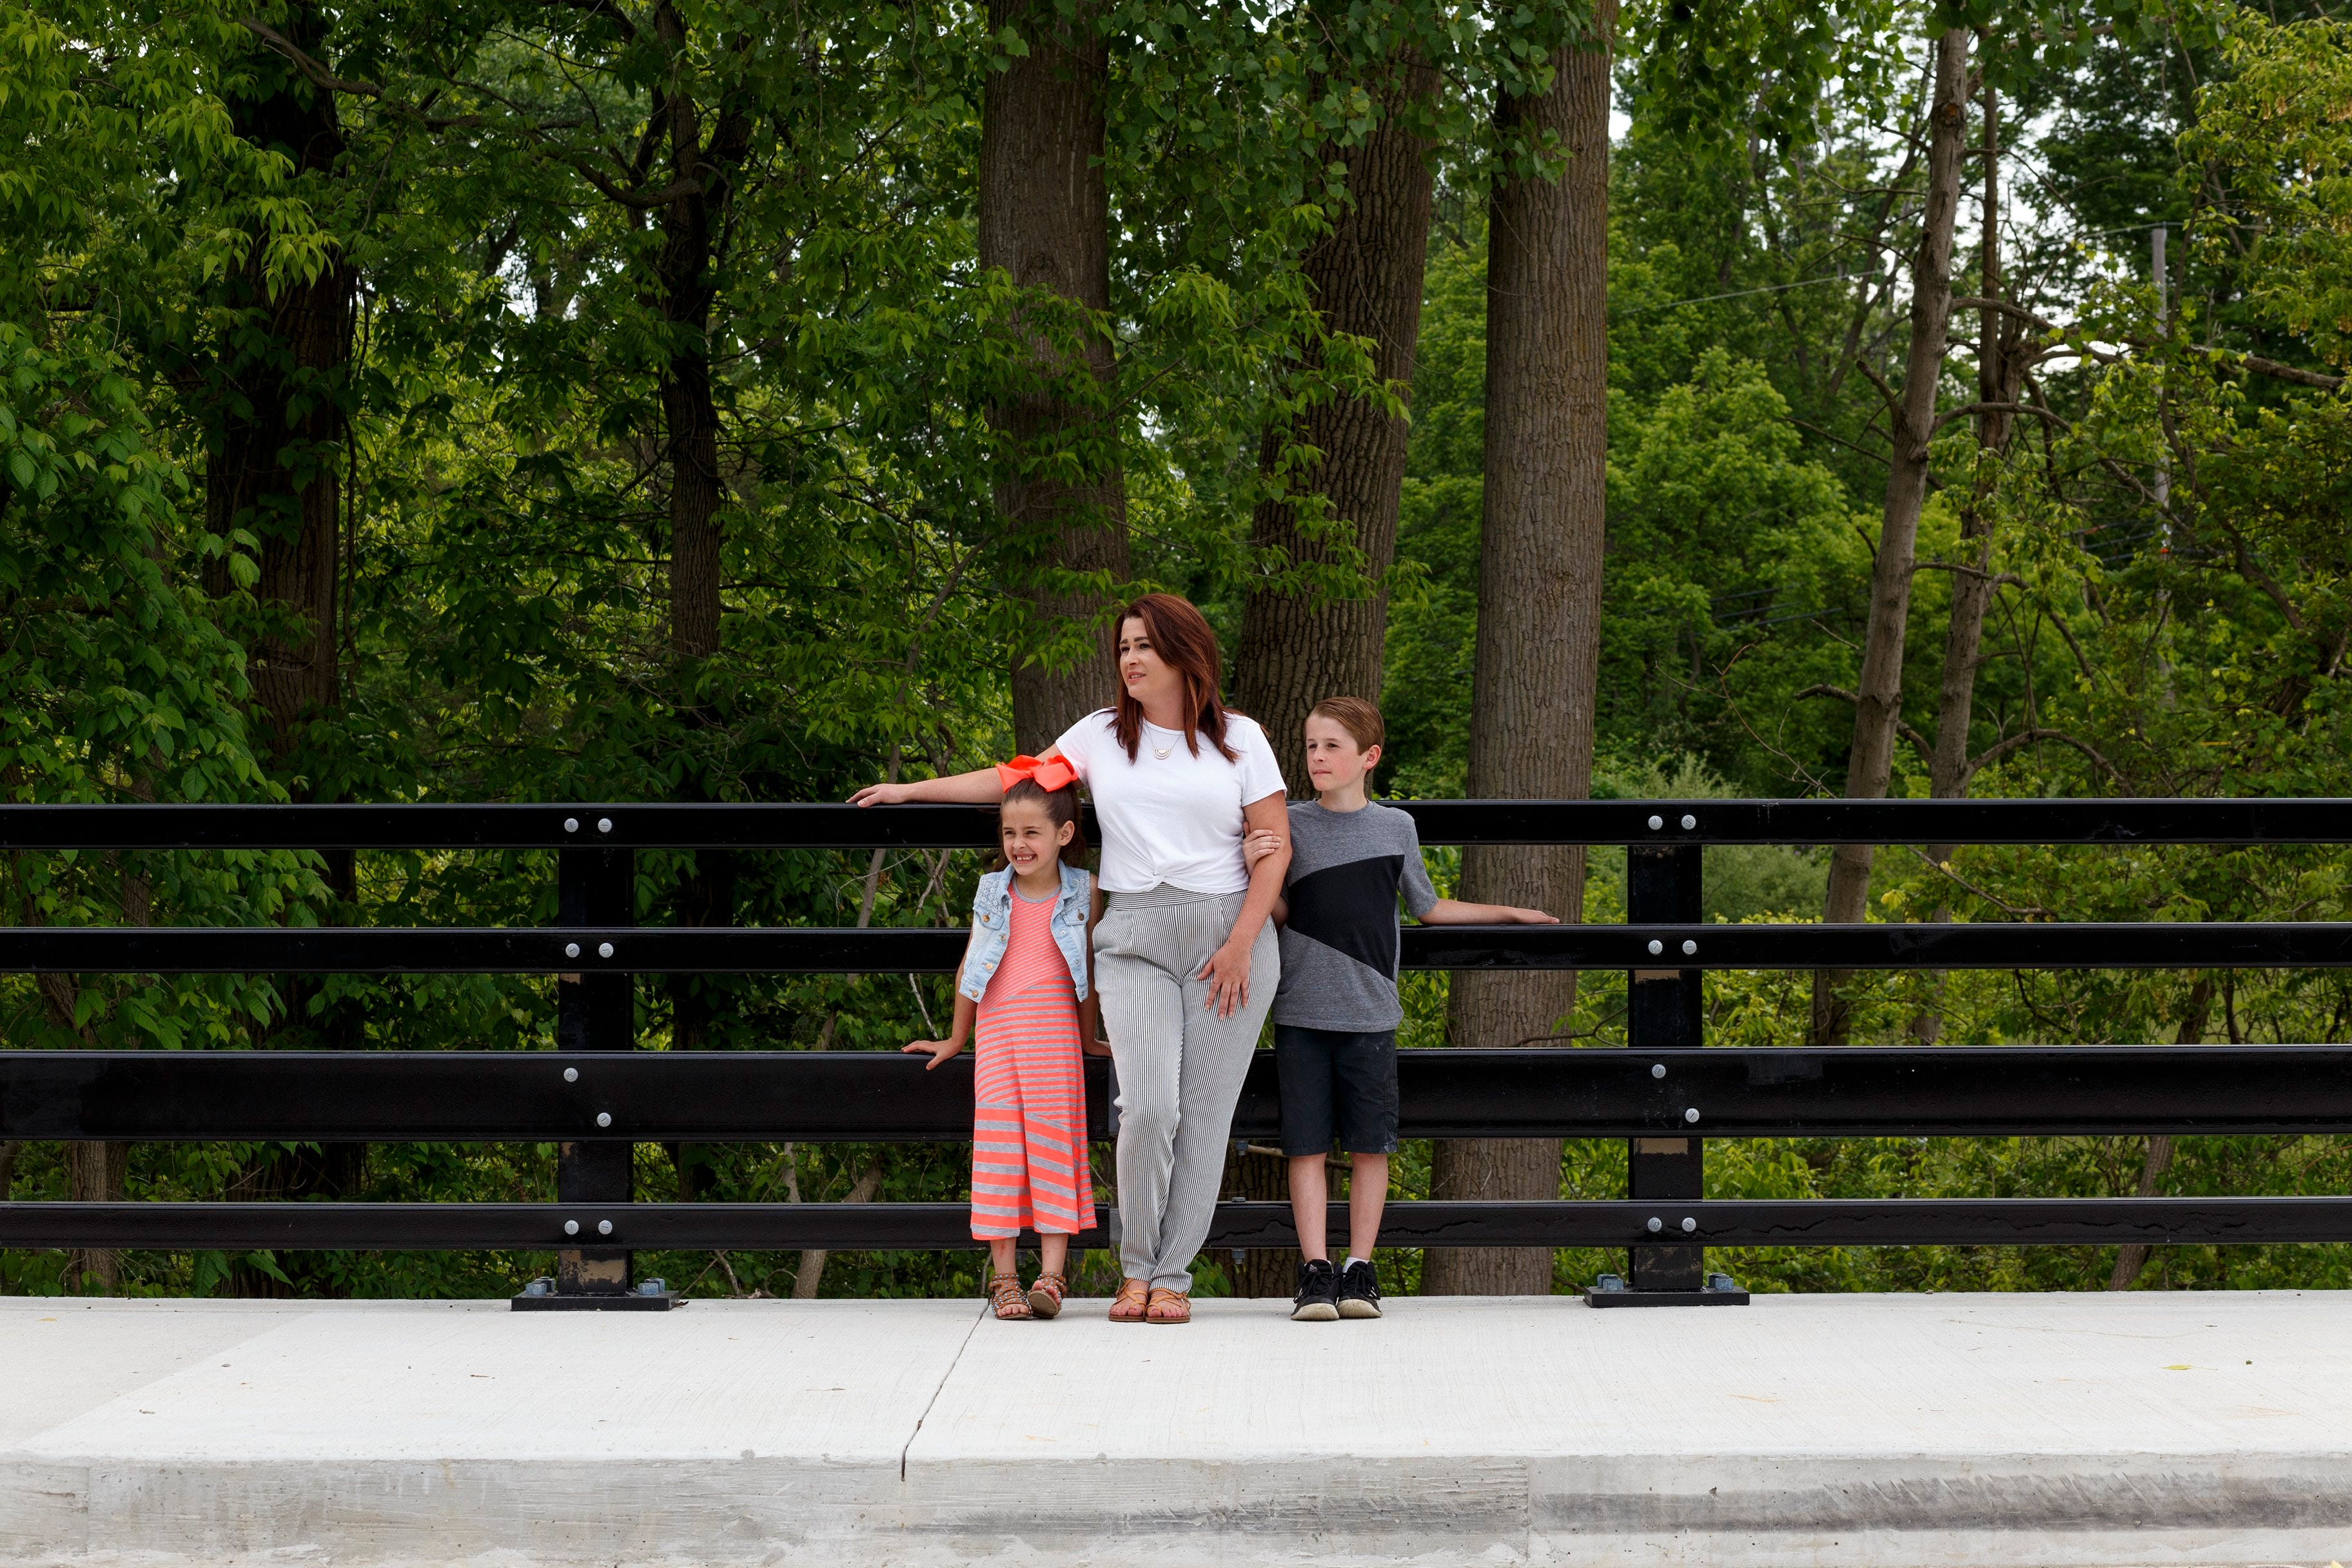 From left, Gracyn Miles, 6, Amanda Miles, 35, and Colin Miles, 9, look at traffic passing by on Tuesday in New Boston on the newly opened bridge.